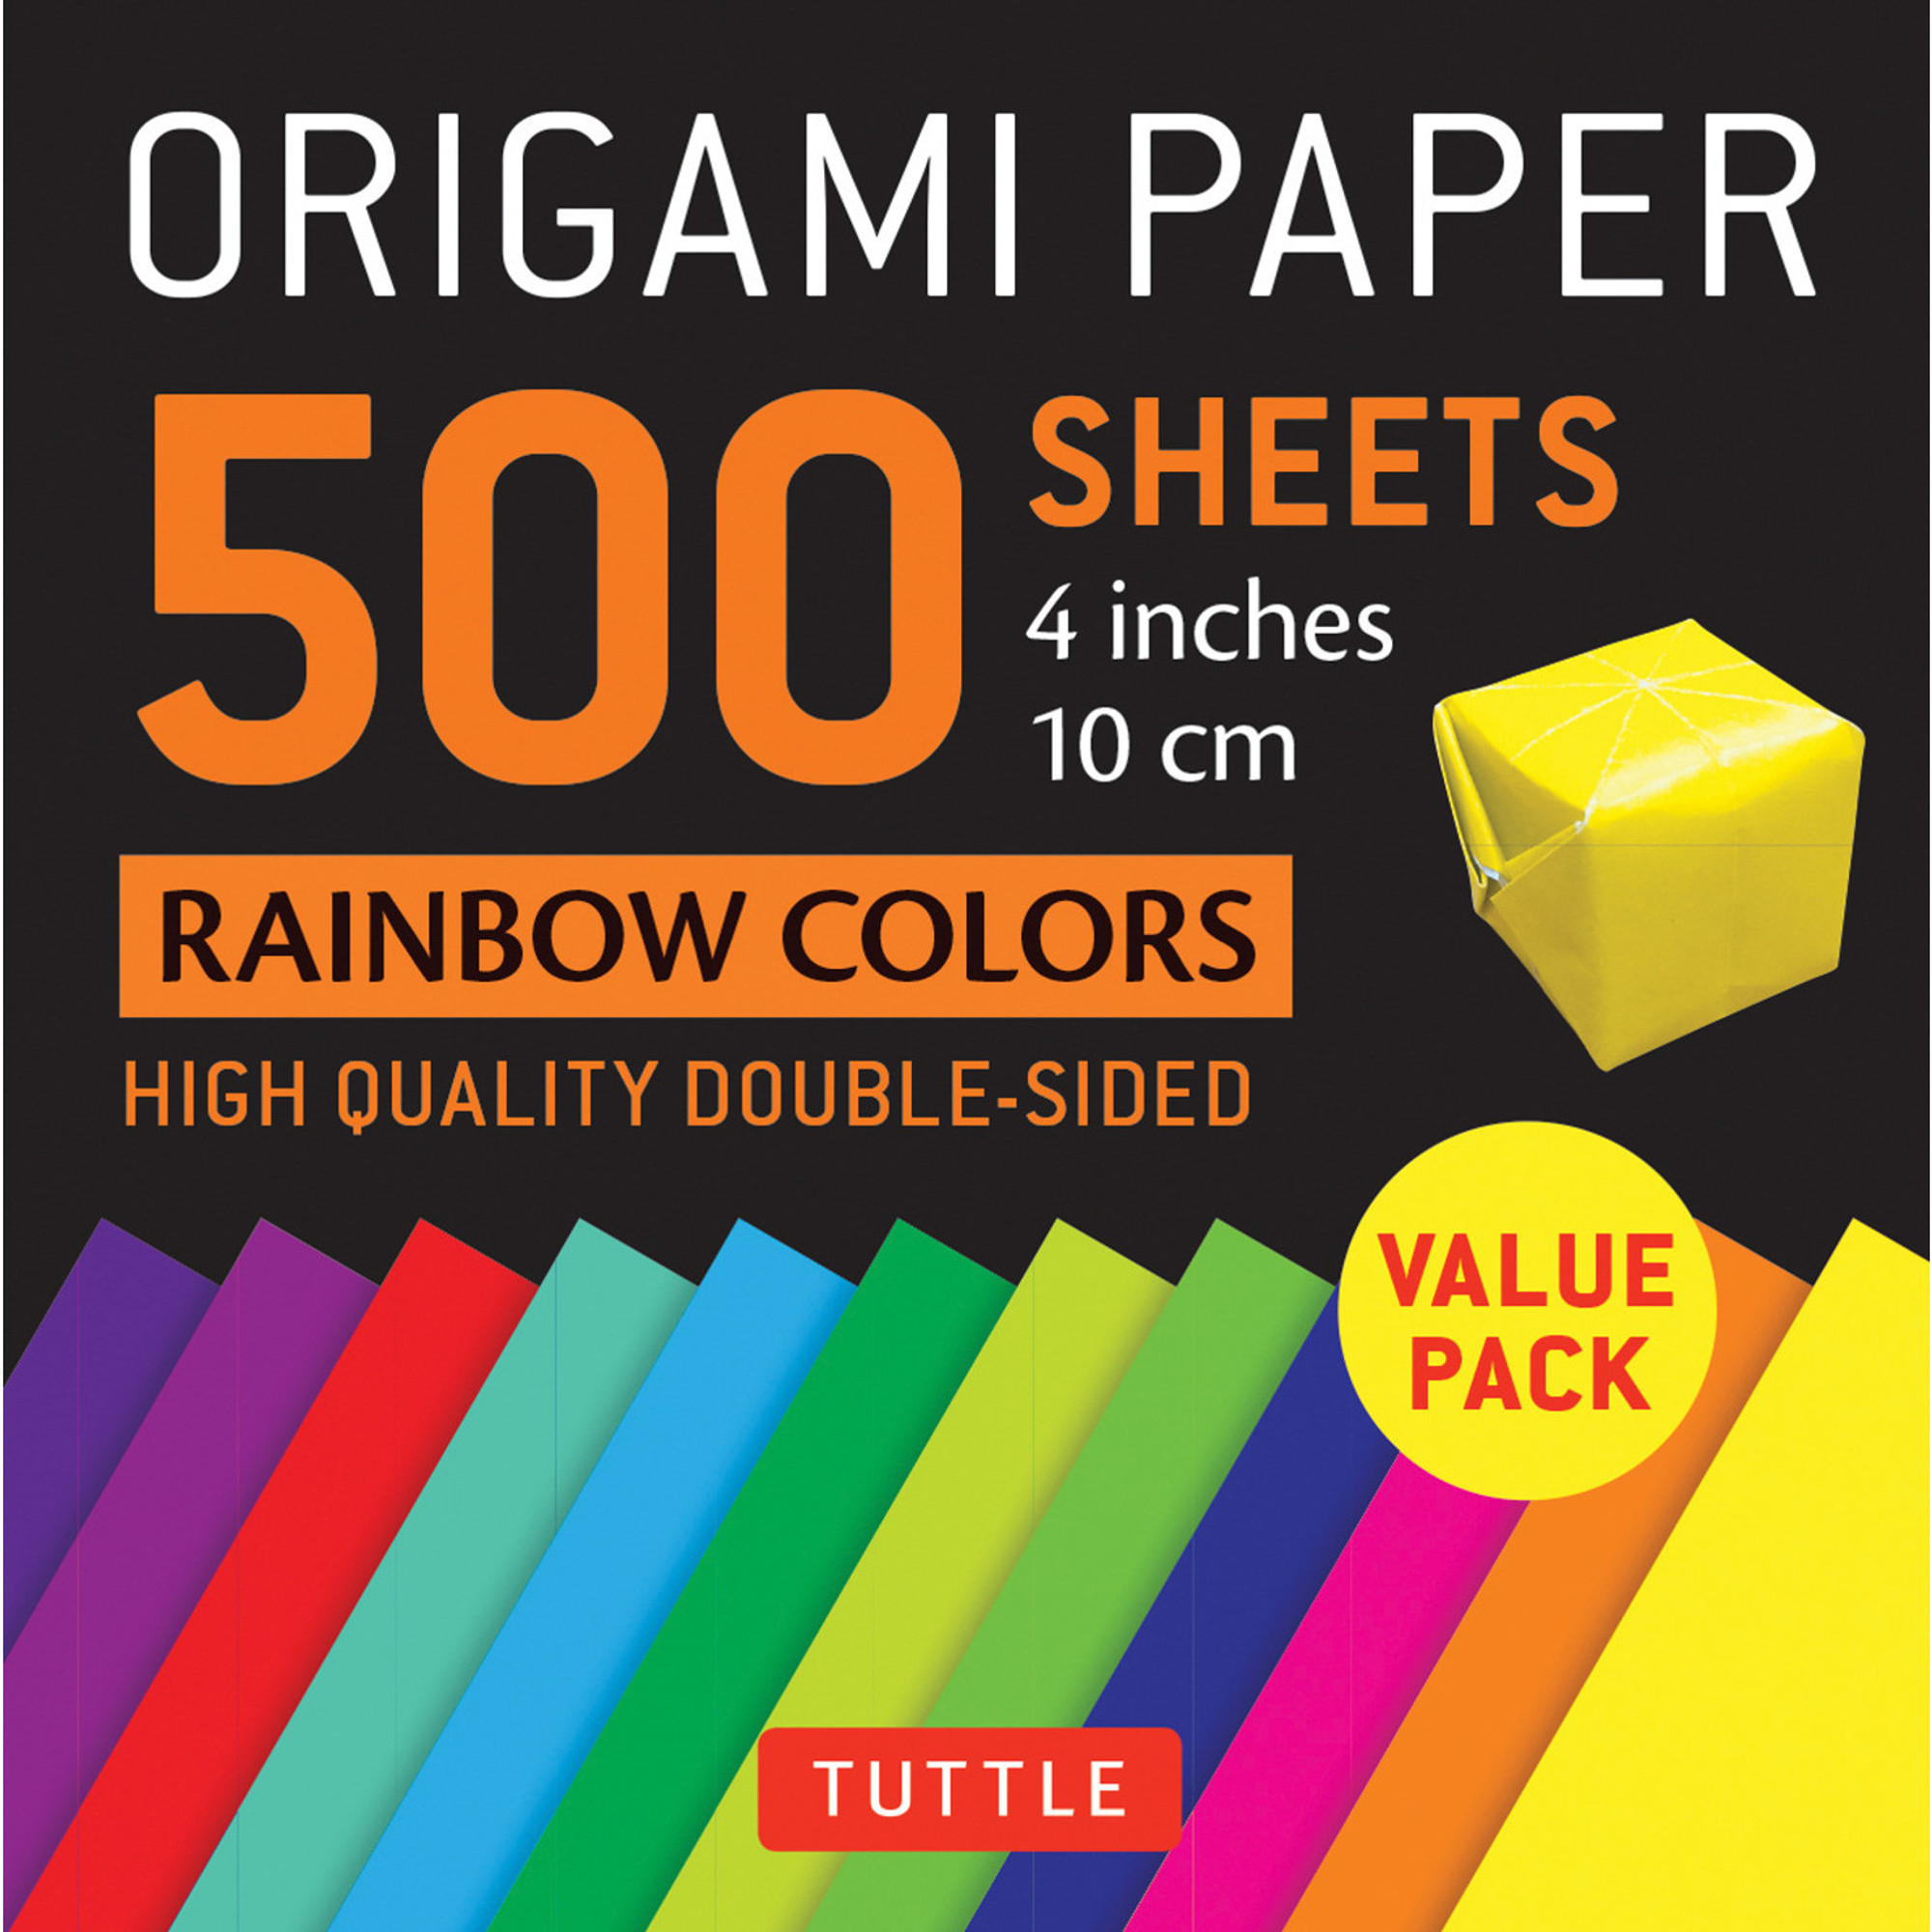 Origami Paper 500 sheets Rainbow Colors 4 10 cm Tuttle Origami Paper High-Quality Double-Sided Origami Sheets Printed with 12 Different Color Combinations